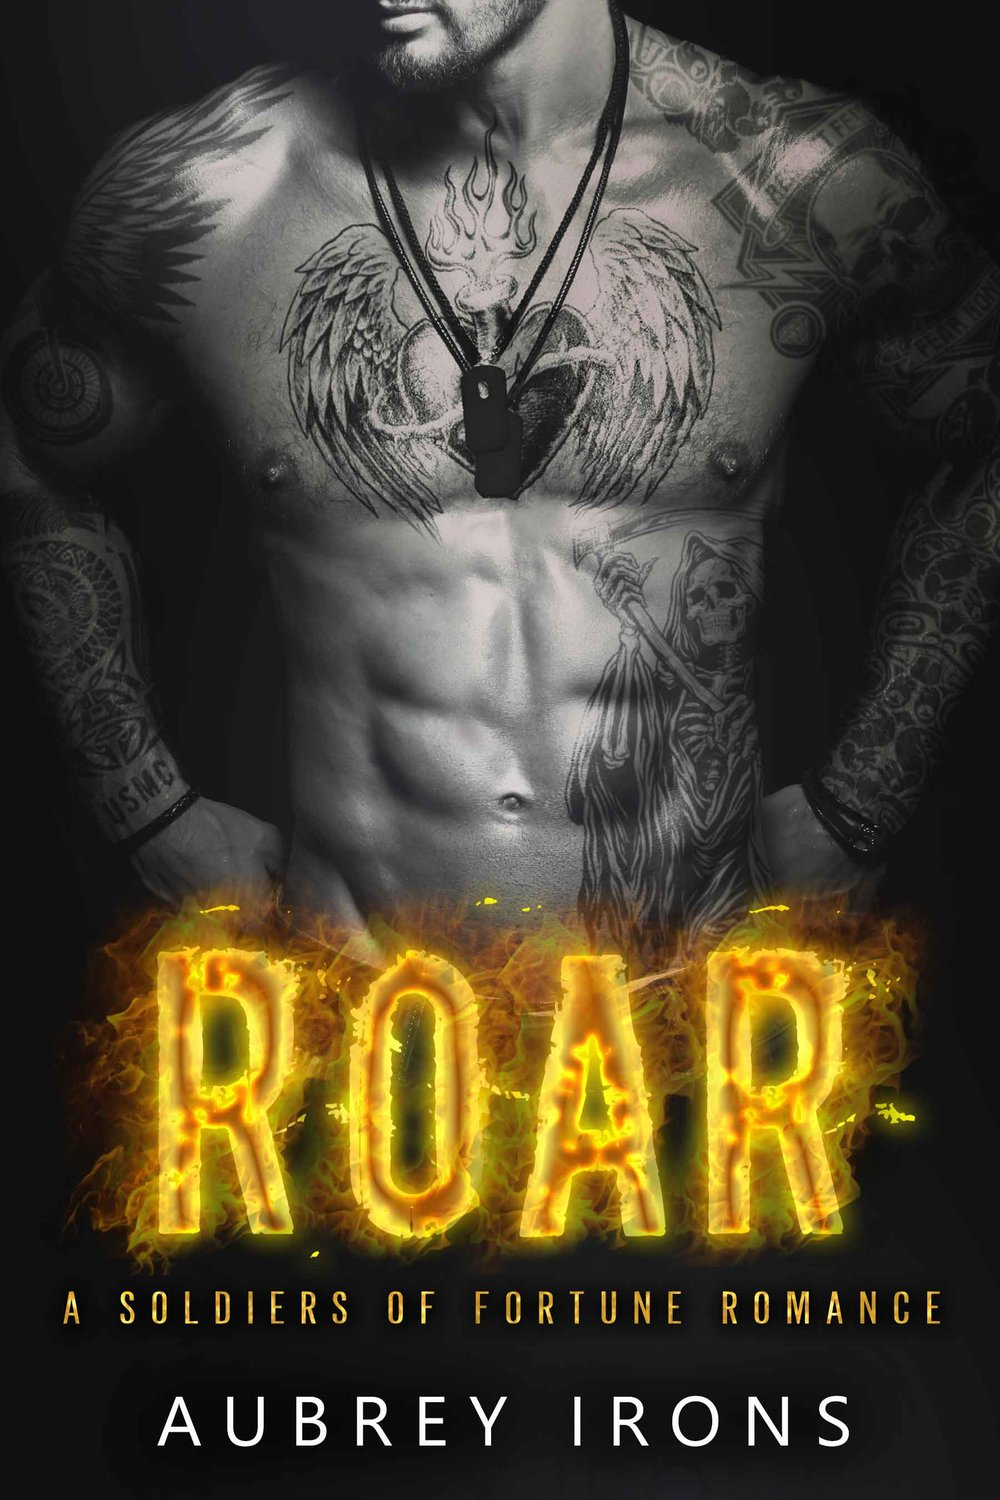 Roar---New-Cover.jpg